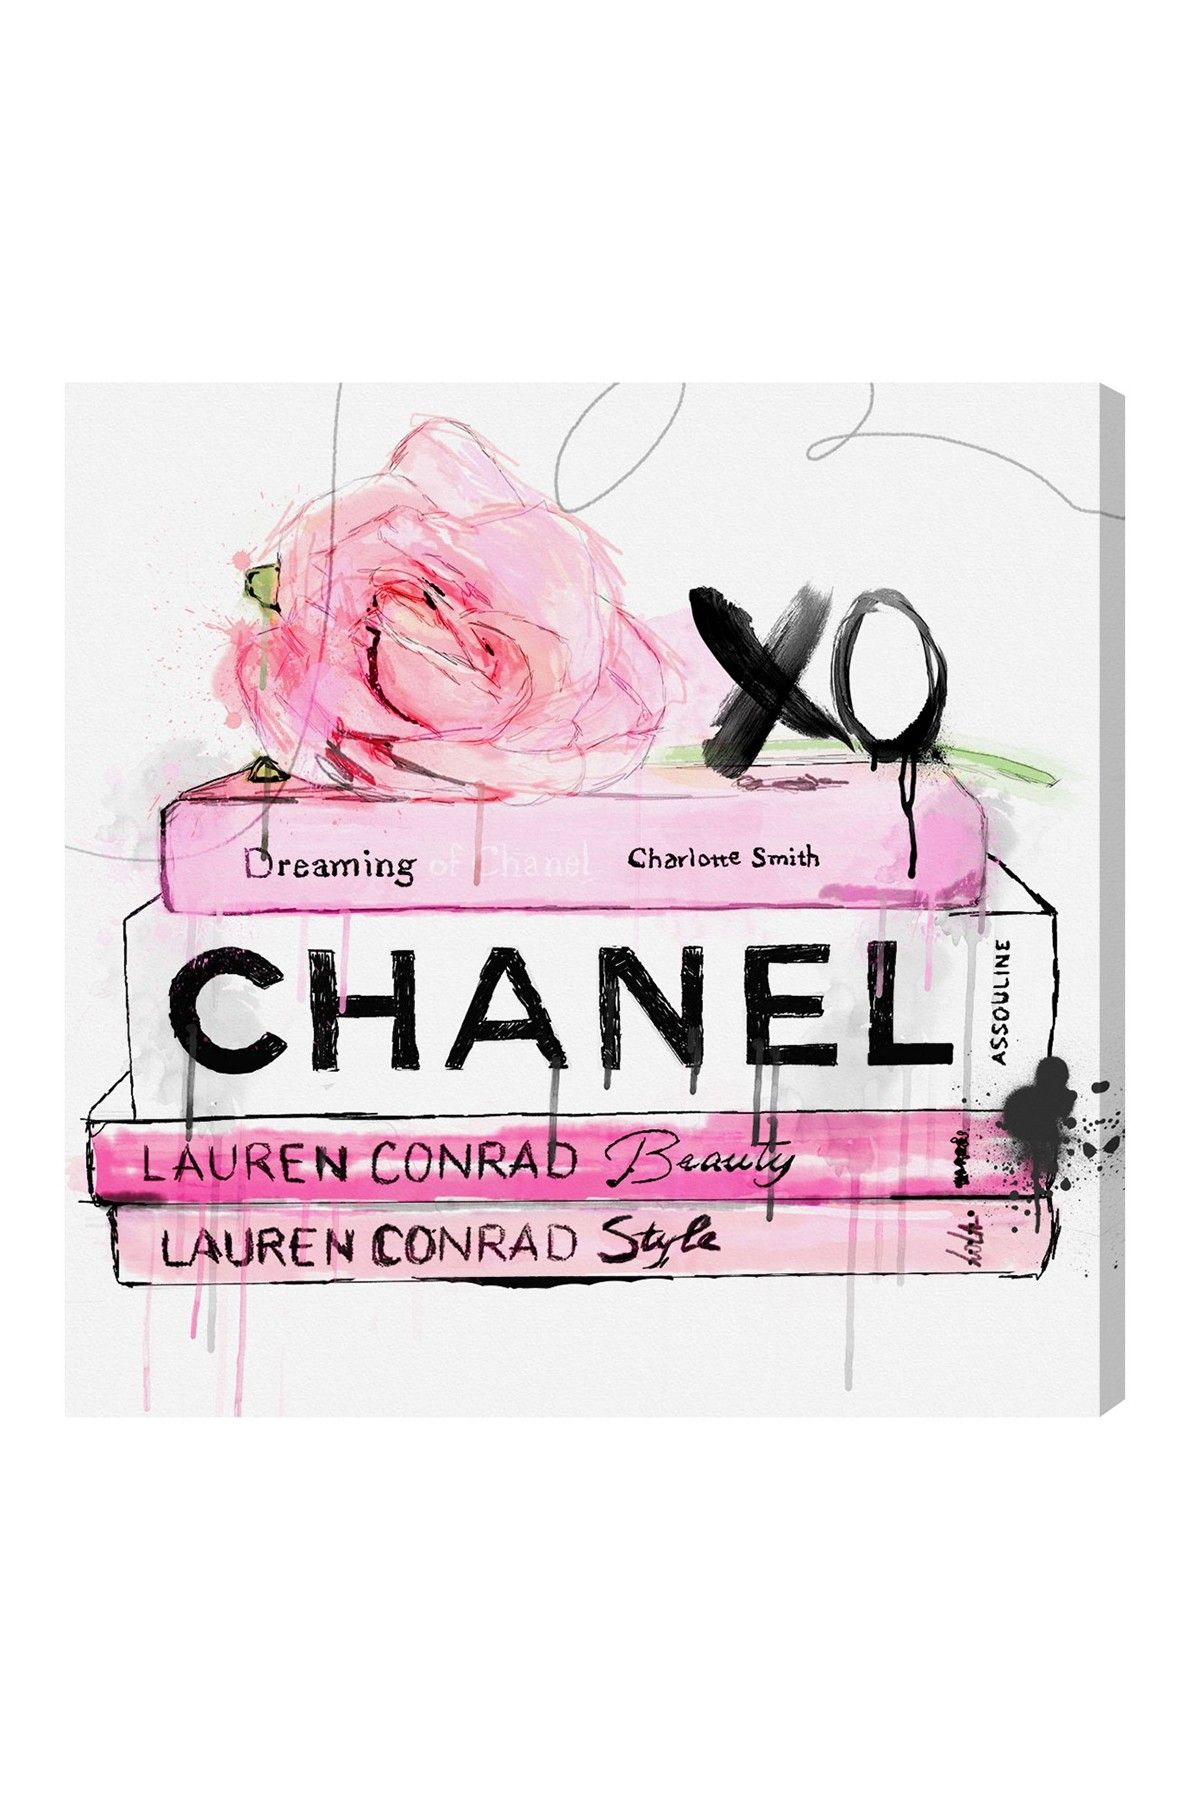 Dripping rose books canvas art on hautelook chanel wall art